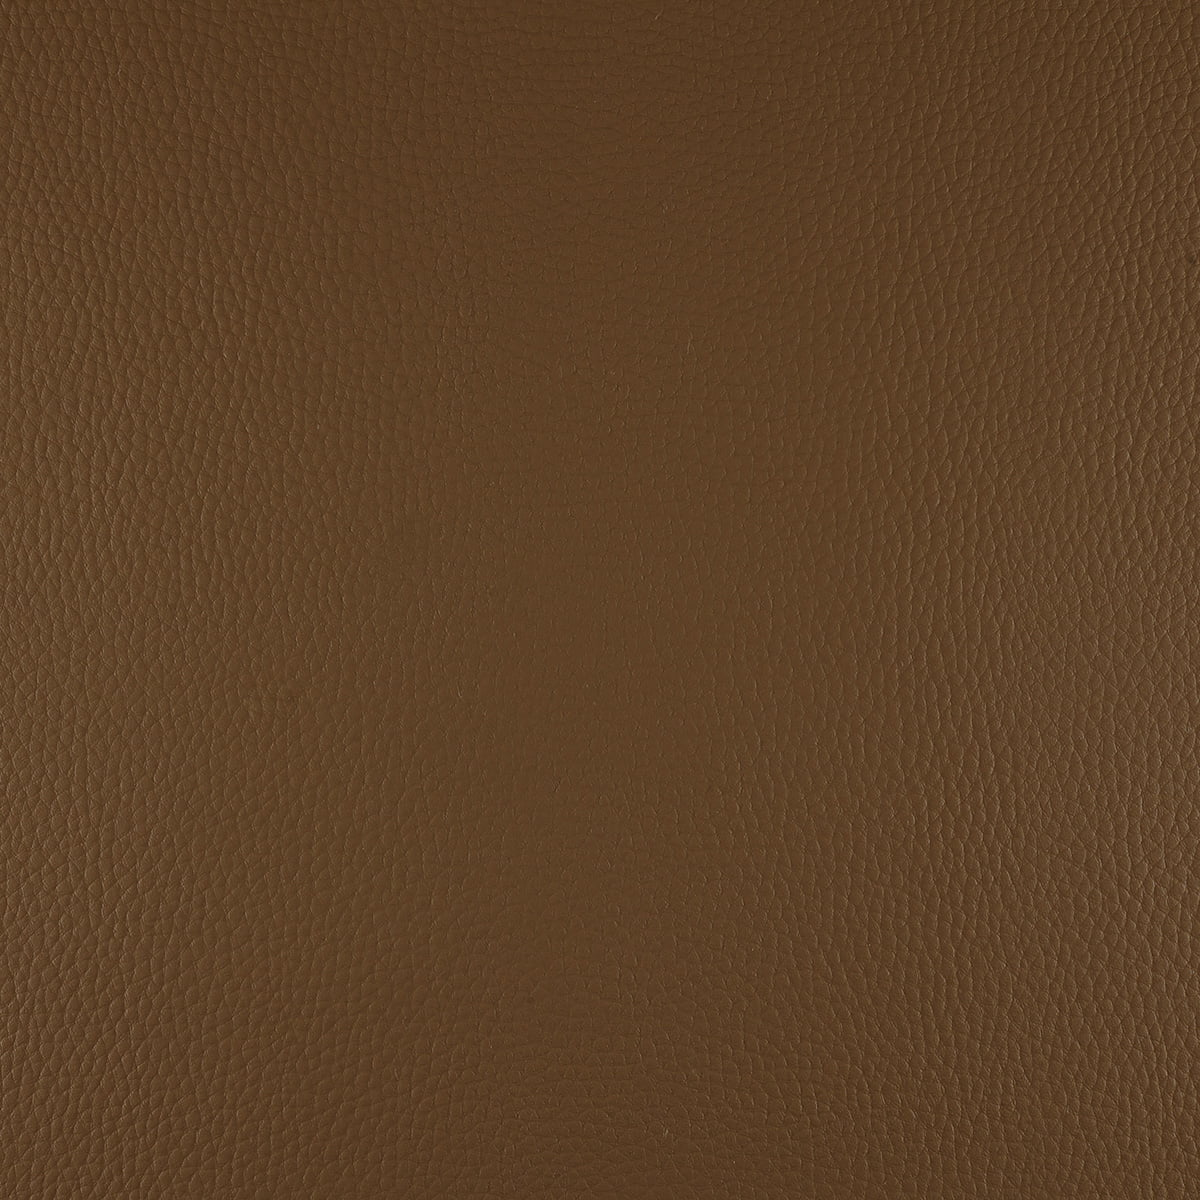 Color Match Of Sherwin Williams Sw6083 Sable